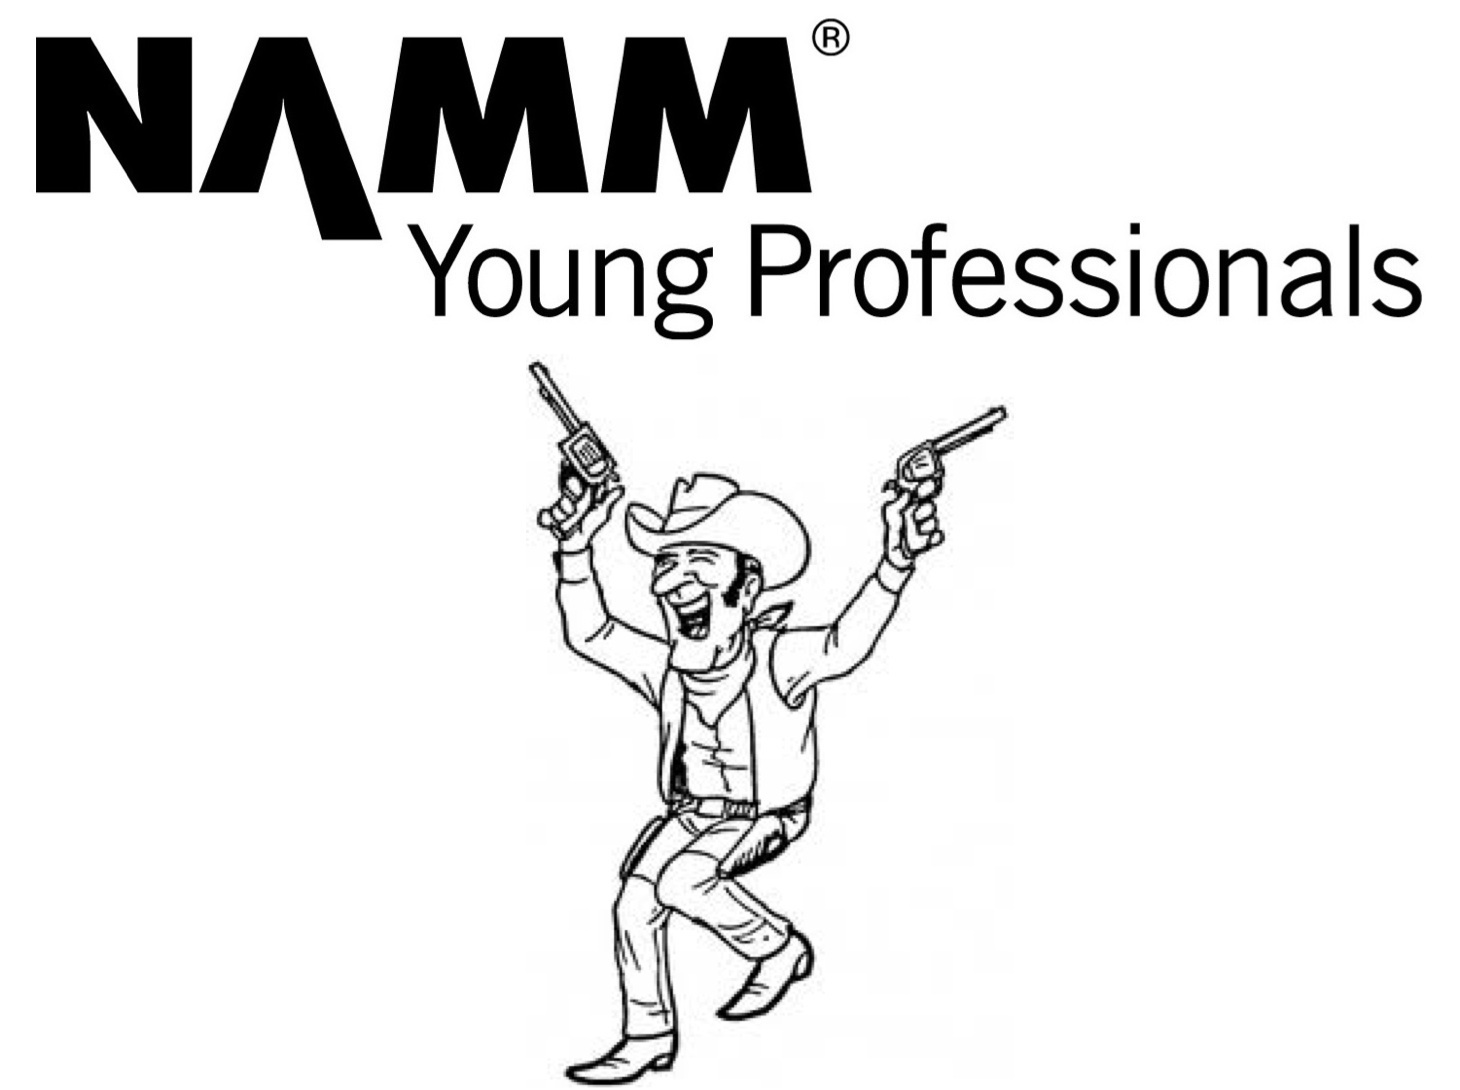 NAMM Young Professionals Group Announces Its First Annual